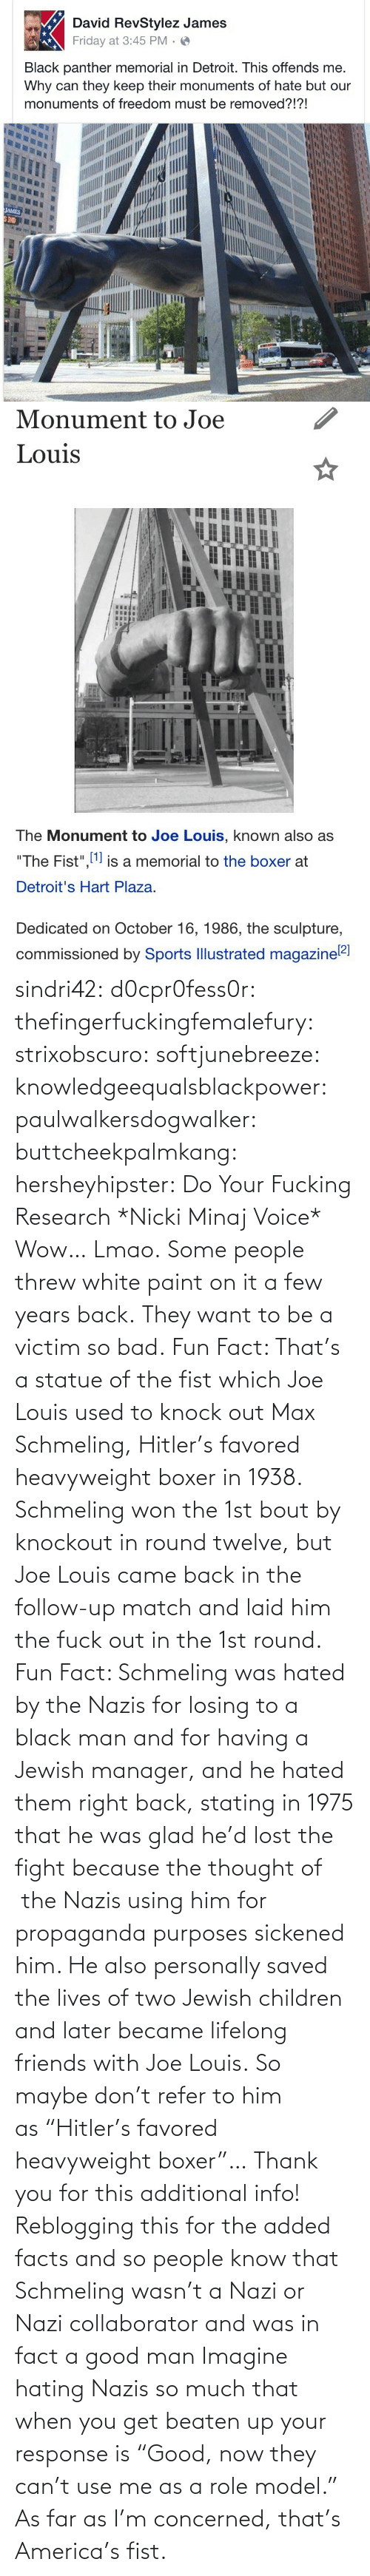 "On It: sindri42:  d0cpr0fess0r:  thefingerfuckingfemalefury:  strixobscuro:  softjunebreeze:  knowledgeequalsblackpower:  paulwalkersdogwalker:   buttcheekpalmkang:   hersheyhipster:  Do Your Fucking Research *Nicki Minaj Voice*    Wow… Lmao.   Some people threw white paint on it a few years back.   They want to be a victim so bad.  Fun Fact: That's a statue of the fist which Joe Louis used to knock out Max Schmeling, Hitler's favored heavyweight boxer in 1938. Schmeling won the 1st bout by knockout in round twelve, but Joe Louis came back in the follow-up match and laid him the fuck out in the 1st round.  Fun Fact: Schmeling was hated by the Nazis for losing to a black man and for having a Jewish manager, and he hated them right back, stating in 1975 that he was glad he'd lost the fight because the thought of  the Nazis using him for propaganda purposes sickened him. He also personally saved the lives of two Jewish children and later became lifelong friends with Joe Louis. So maybe don't refer to him as ""Hitler's favored heavyweight boxer""…  Thank you for this additional info! Reblogging this for the added facts and so people know that Schmeling wasn't a Nazi or Nazi collaborator and was in fact a good man   Imagine hating Nazis so much that when you get beaten up your response is ""Good, now they can't use me as a role model.""  As far as I'm concerned, that's America's fist."